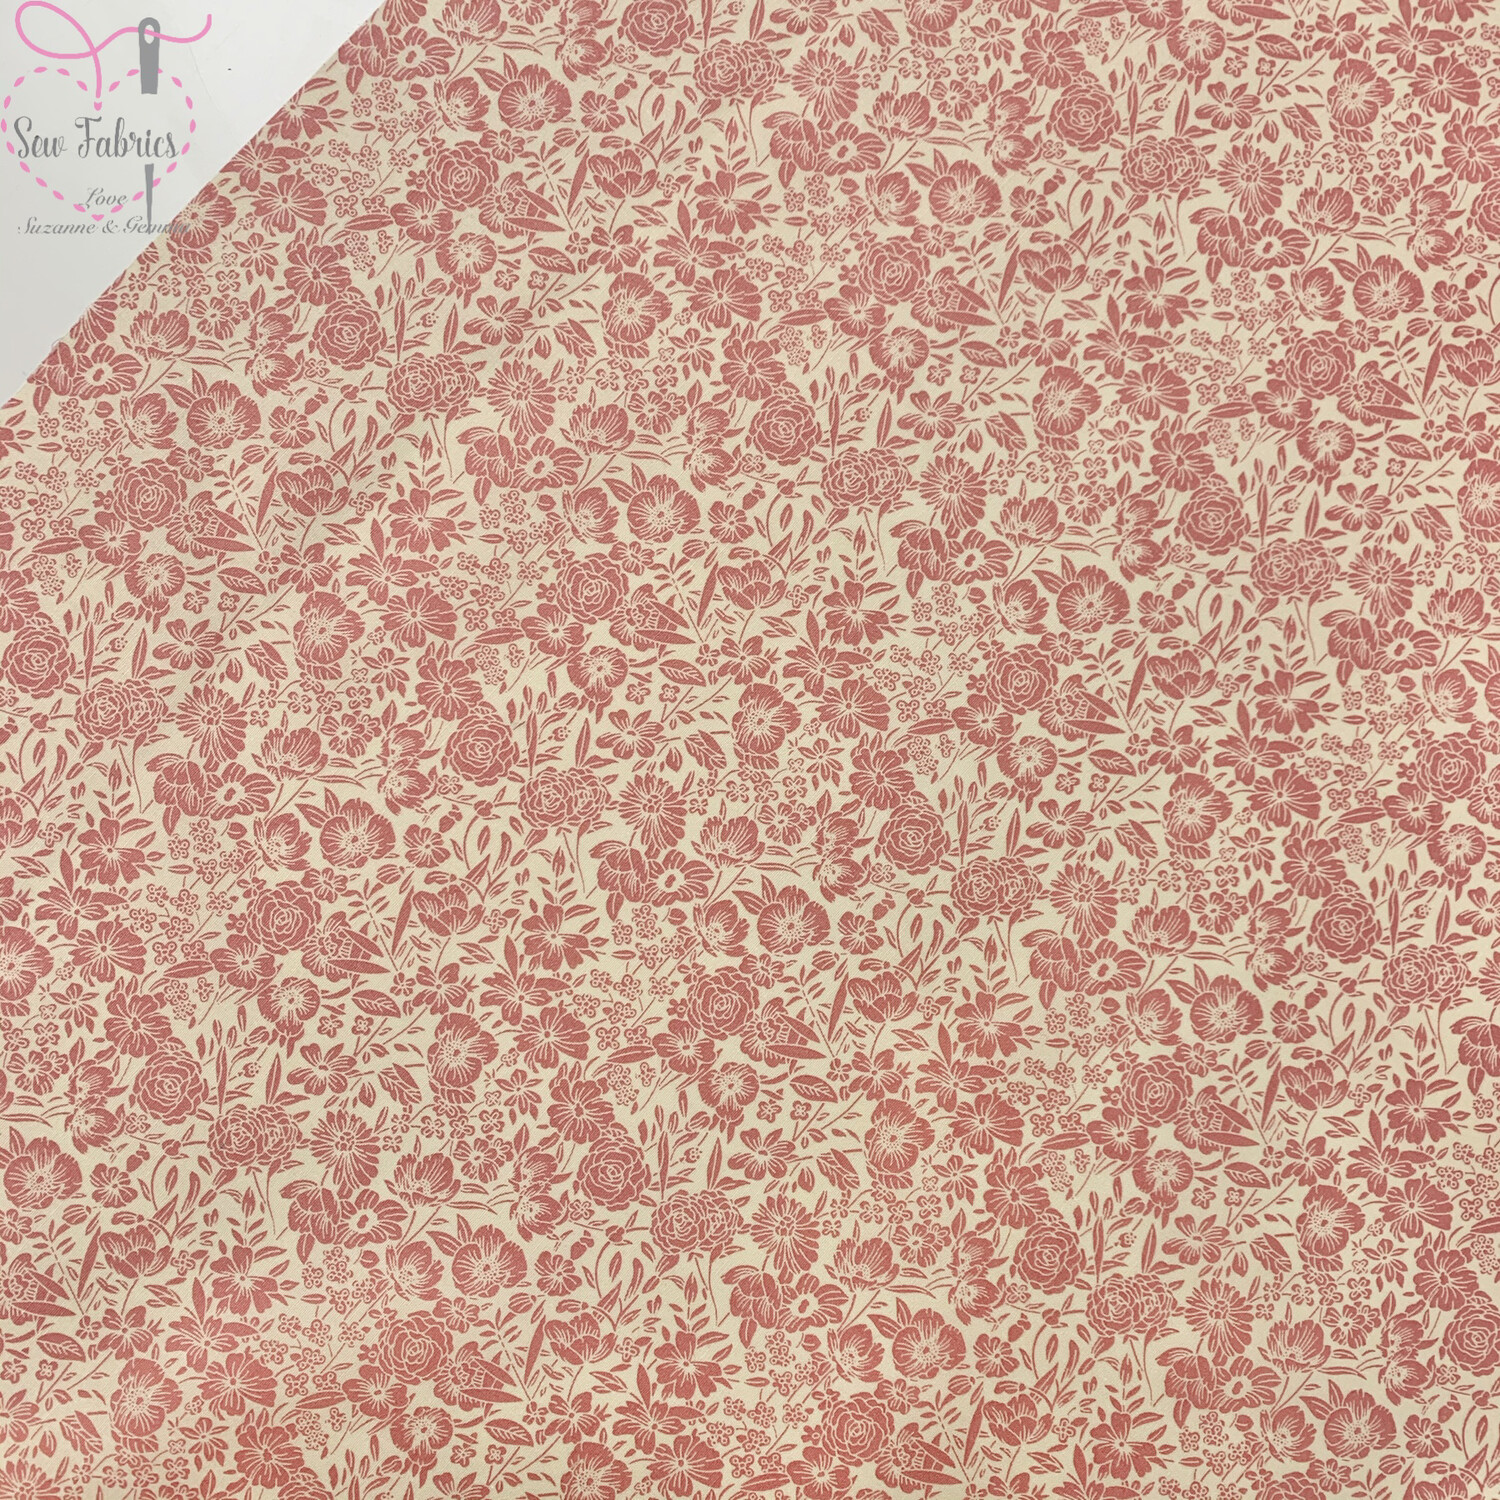 Rose & Hubble Rose Pink Classic Floral 100% Cotton Poplin Fabric